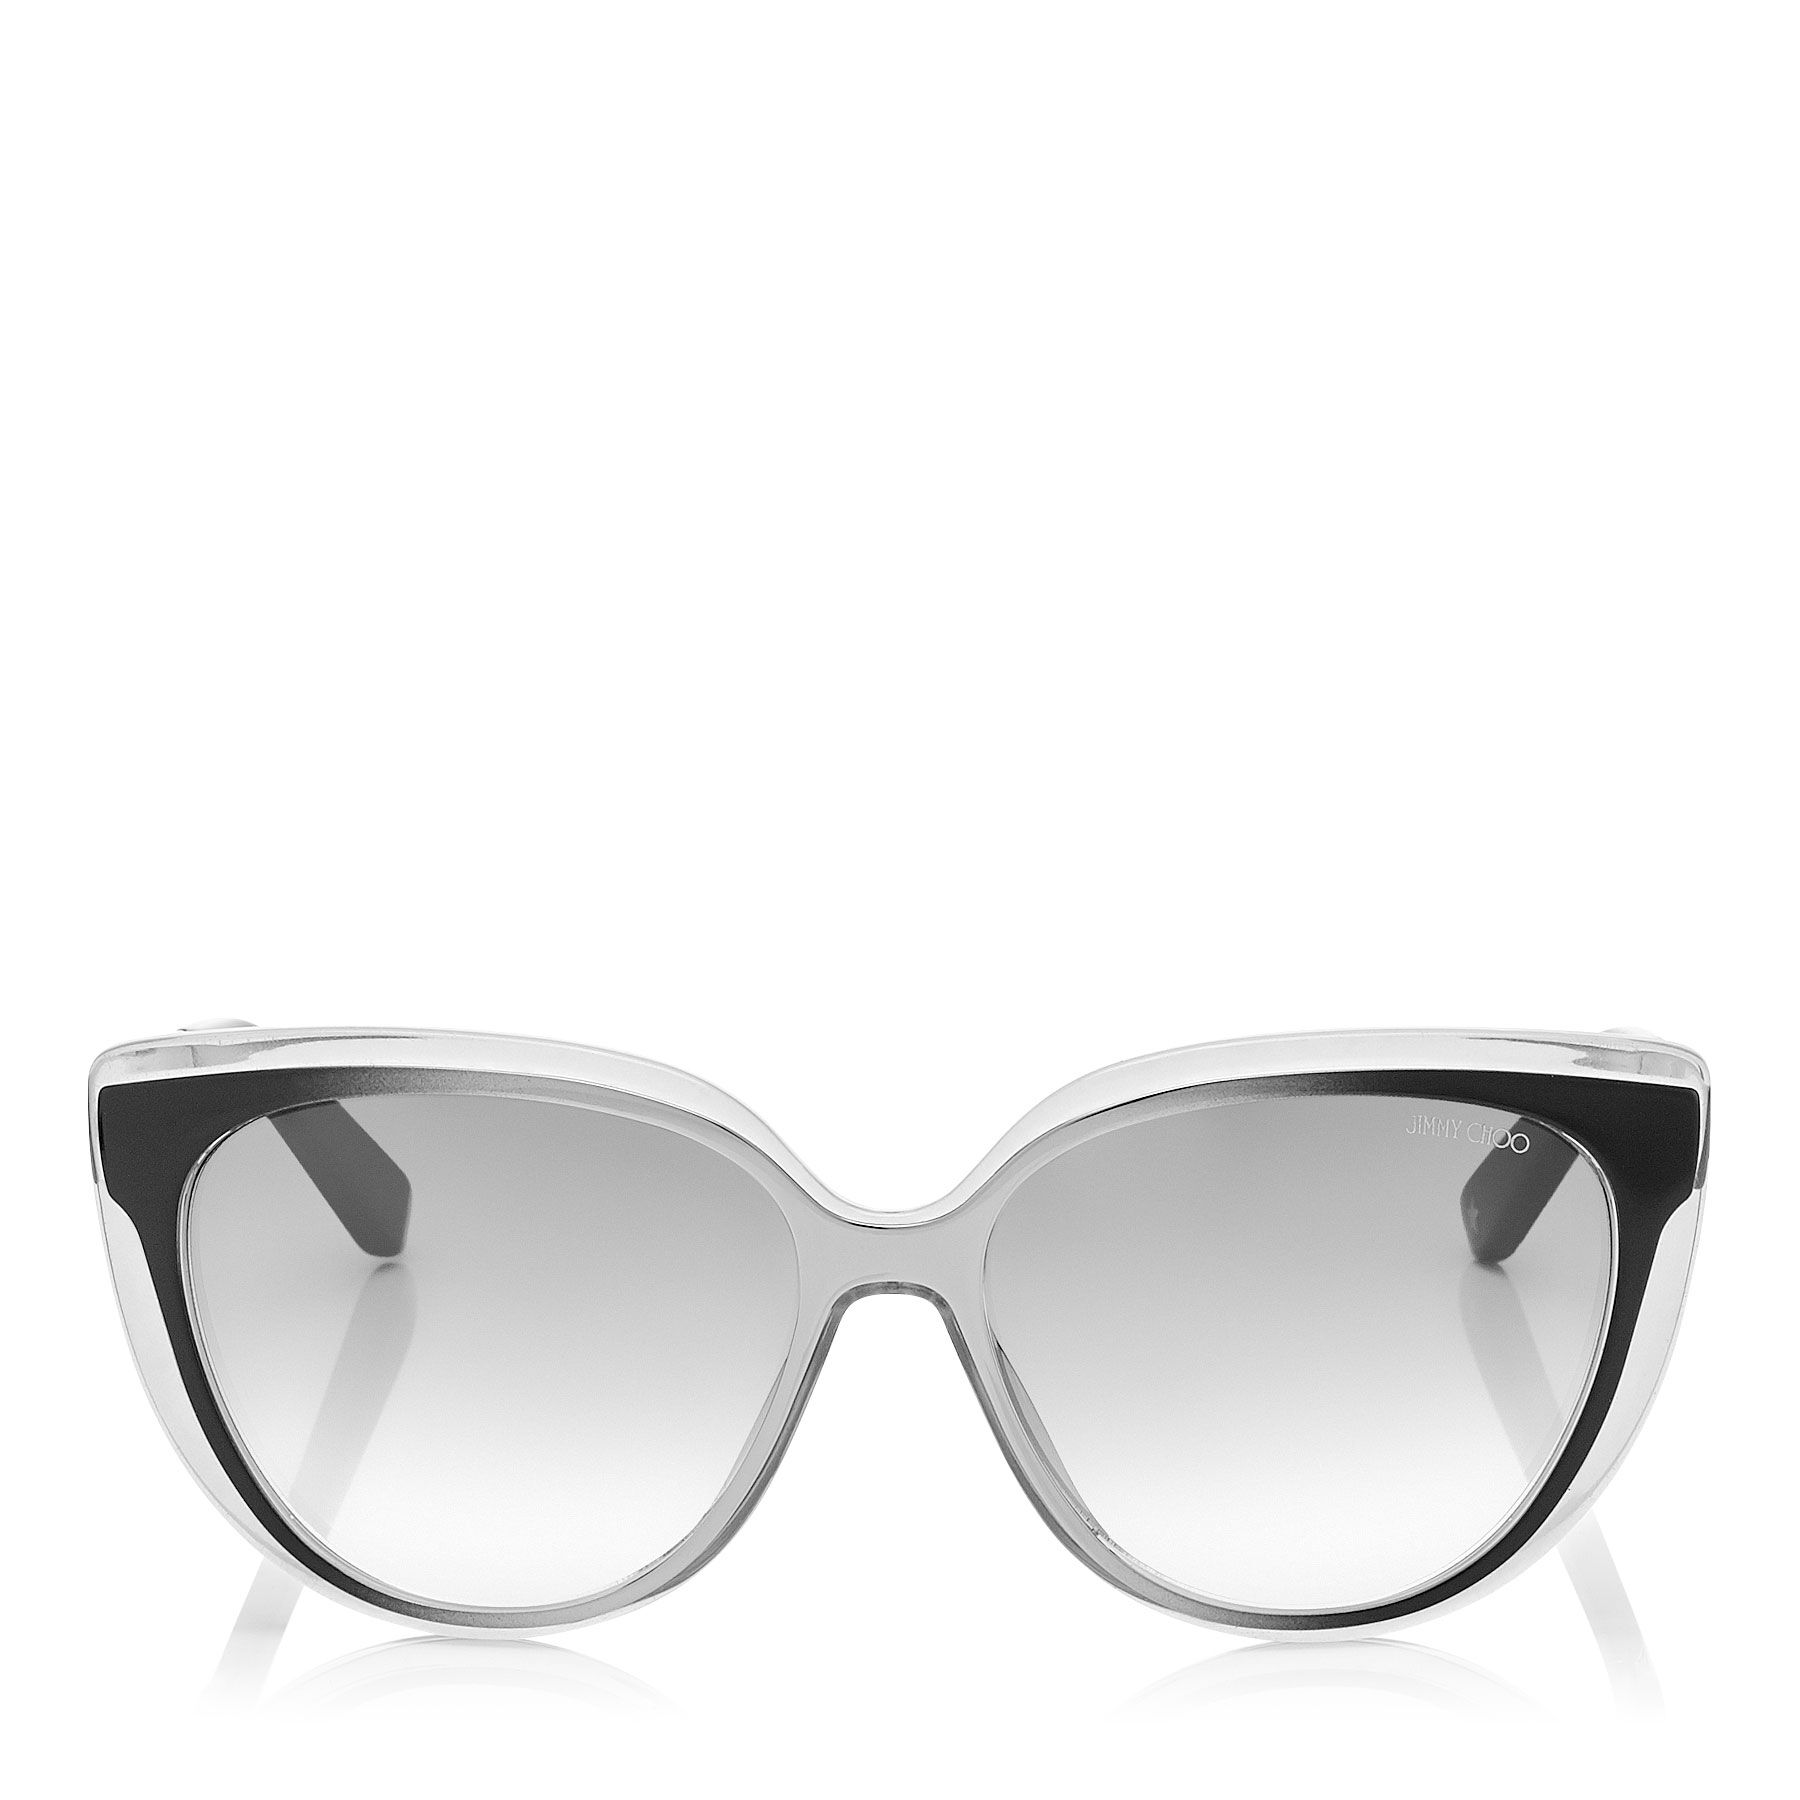 who sells jimmy choo frames shiny | Simply Accessories